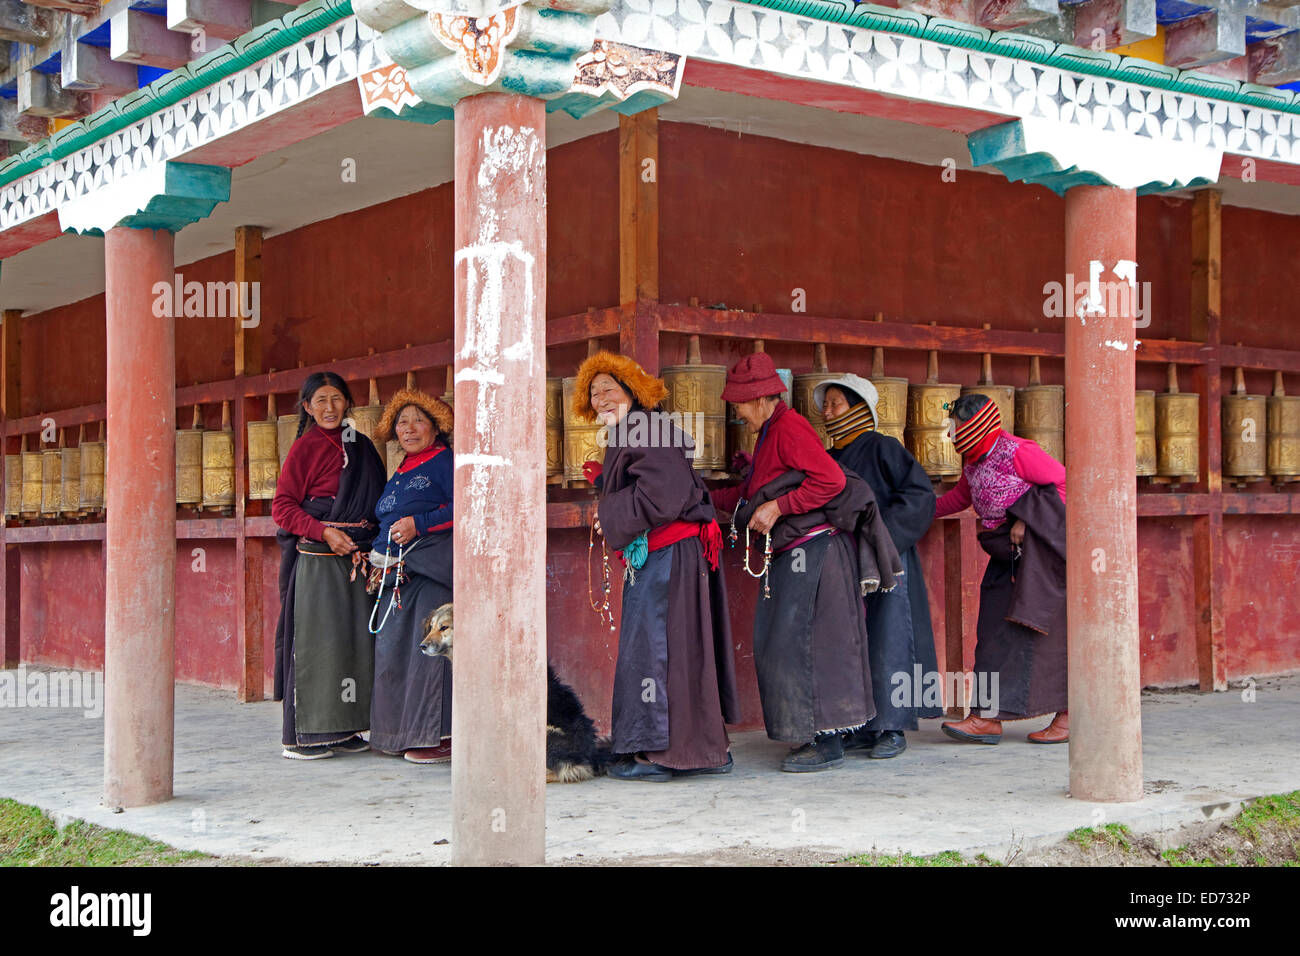 Tibetan women turning prayer wheels in the village Zhuqing, Sichuan Province, China - Stock Image